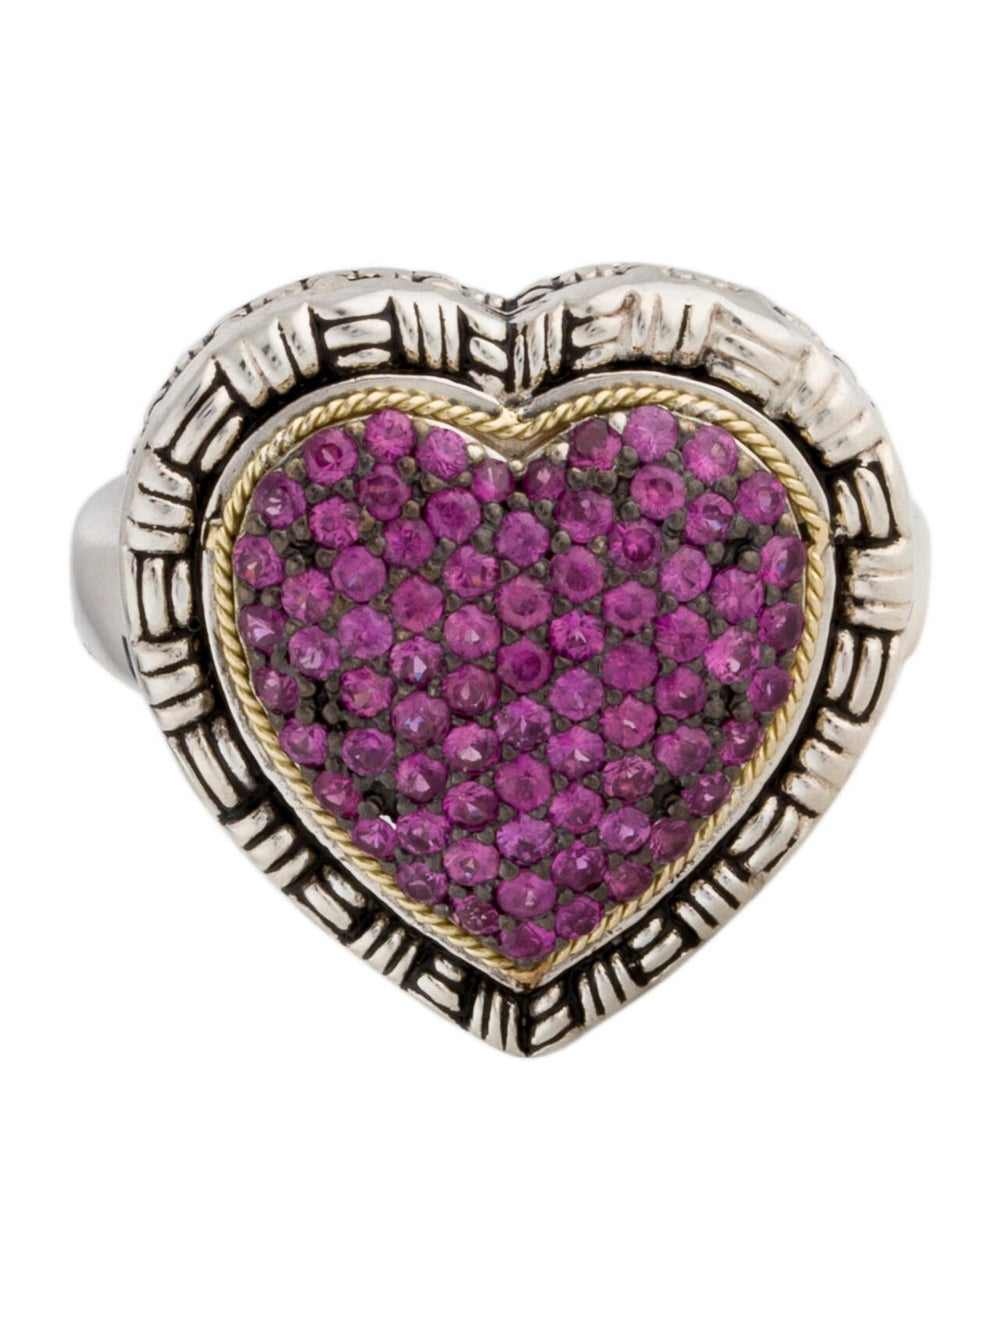 Lali Jewels Ruby Cocktail Ring silver - image 3